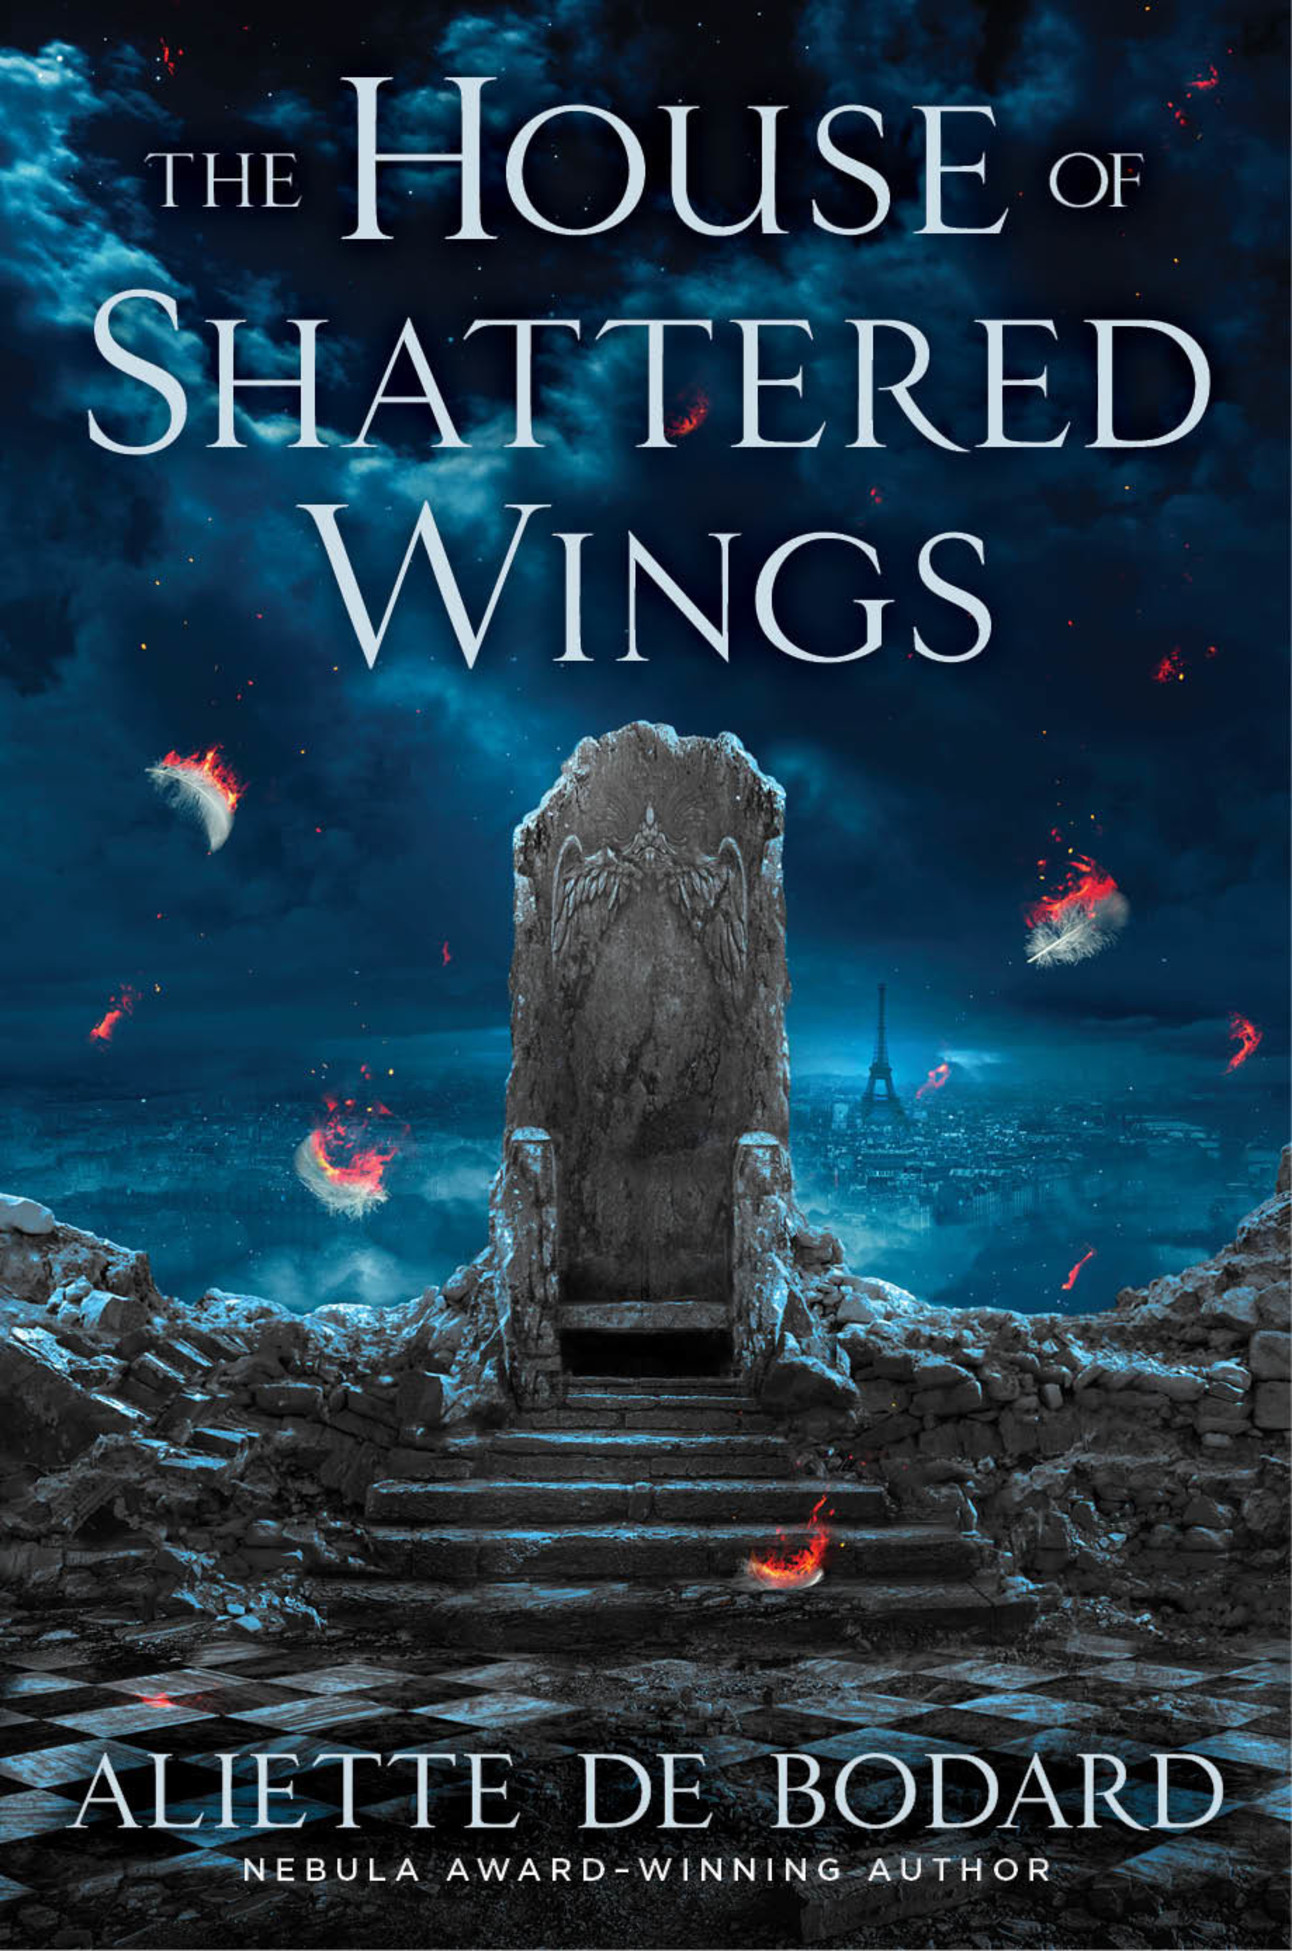 house of shattered wings aliette de bodard